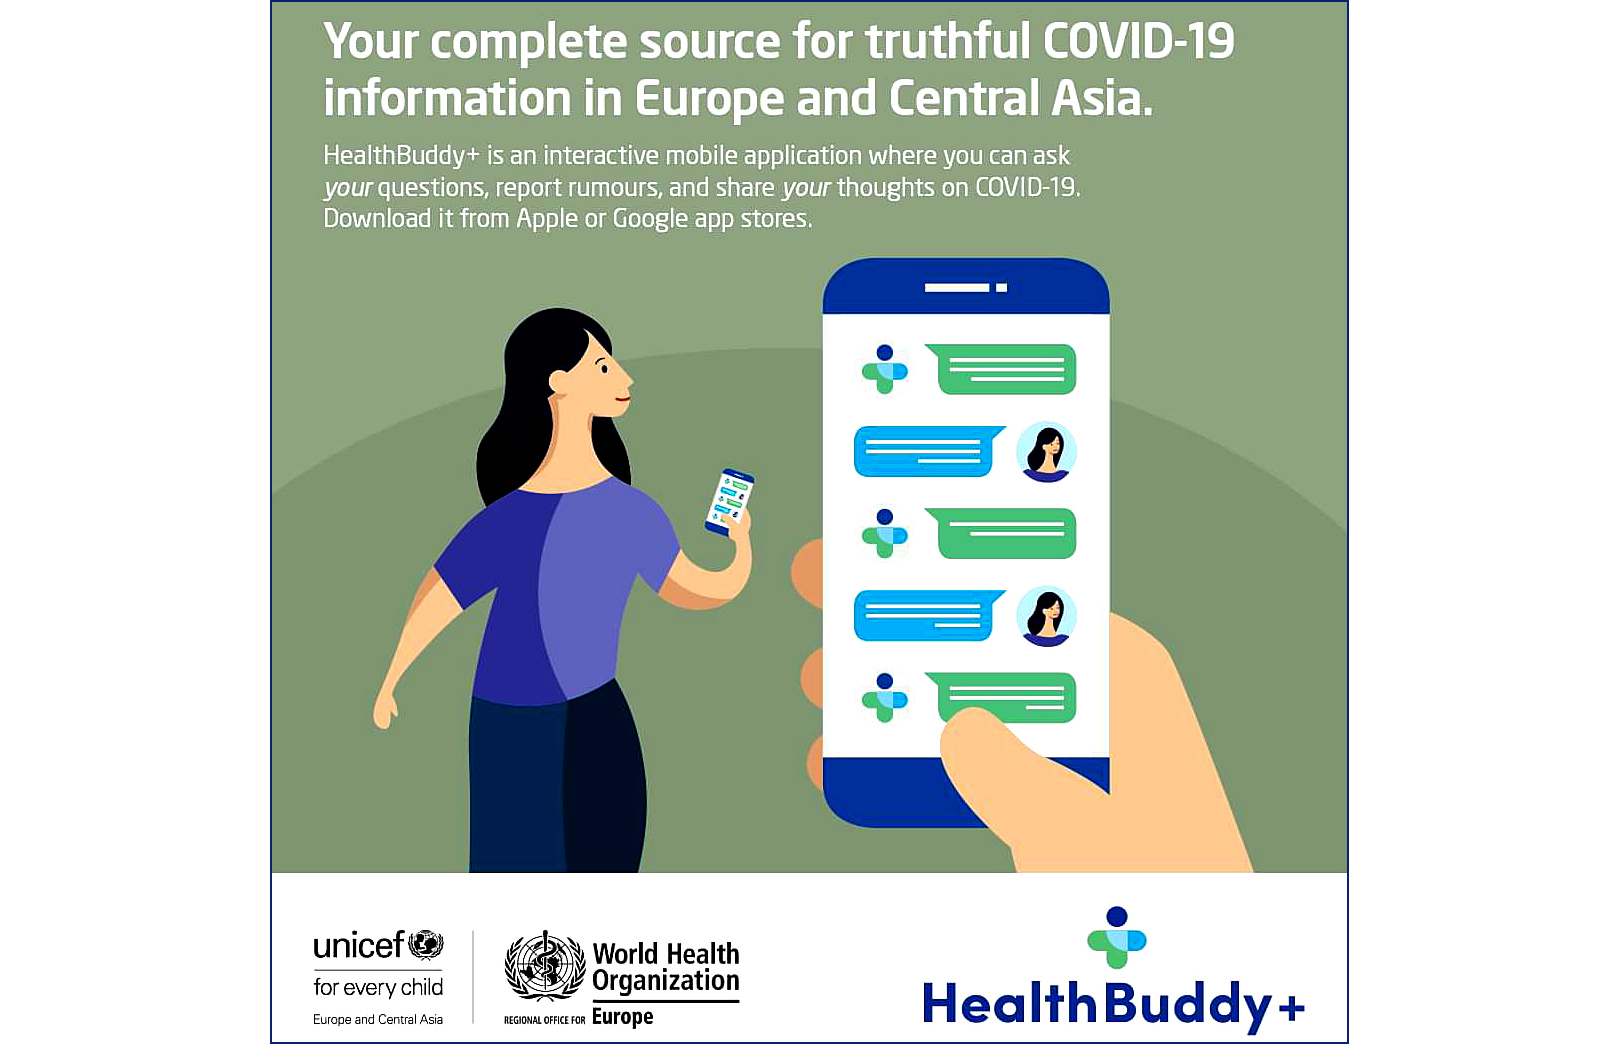 HealthBuddy+. Ask me about COVID-19